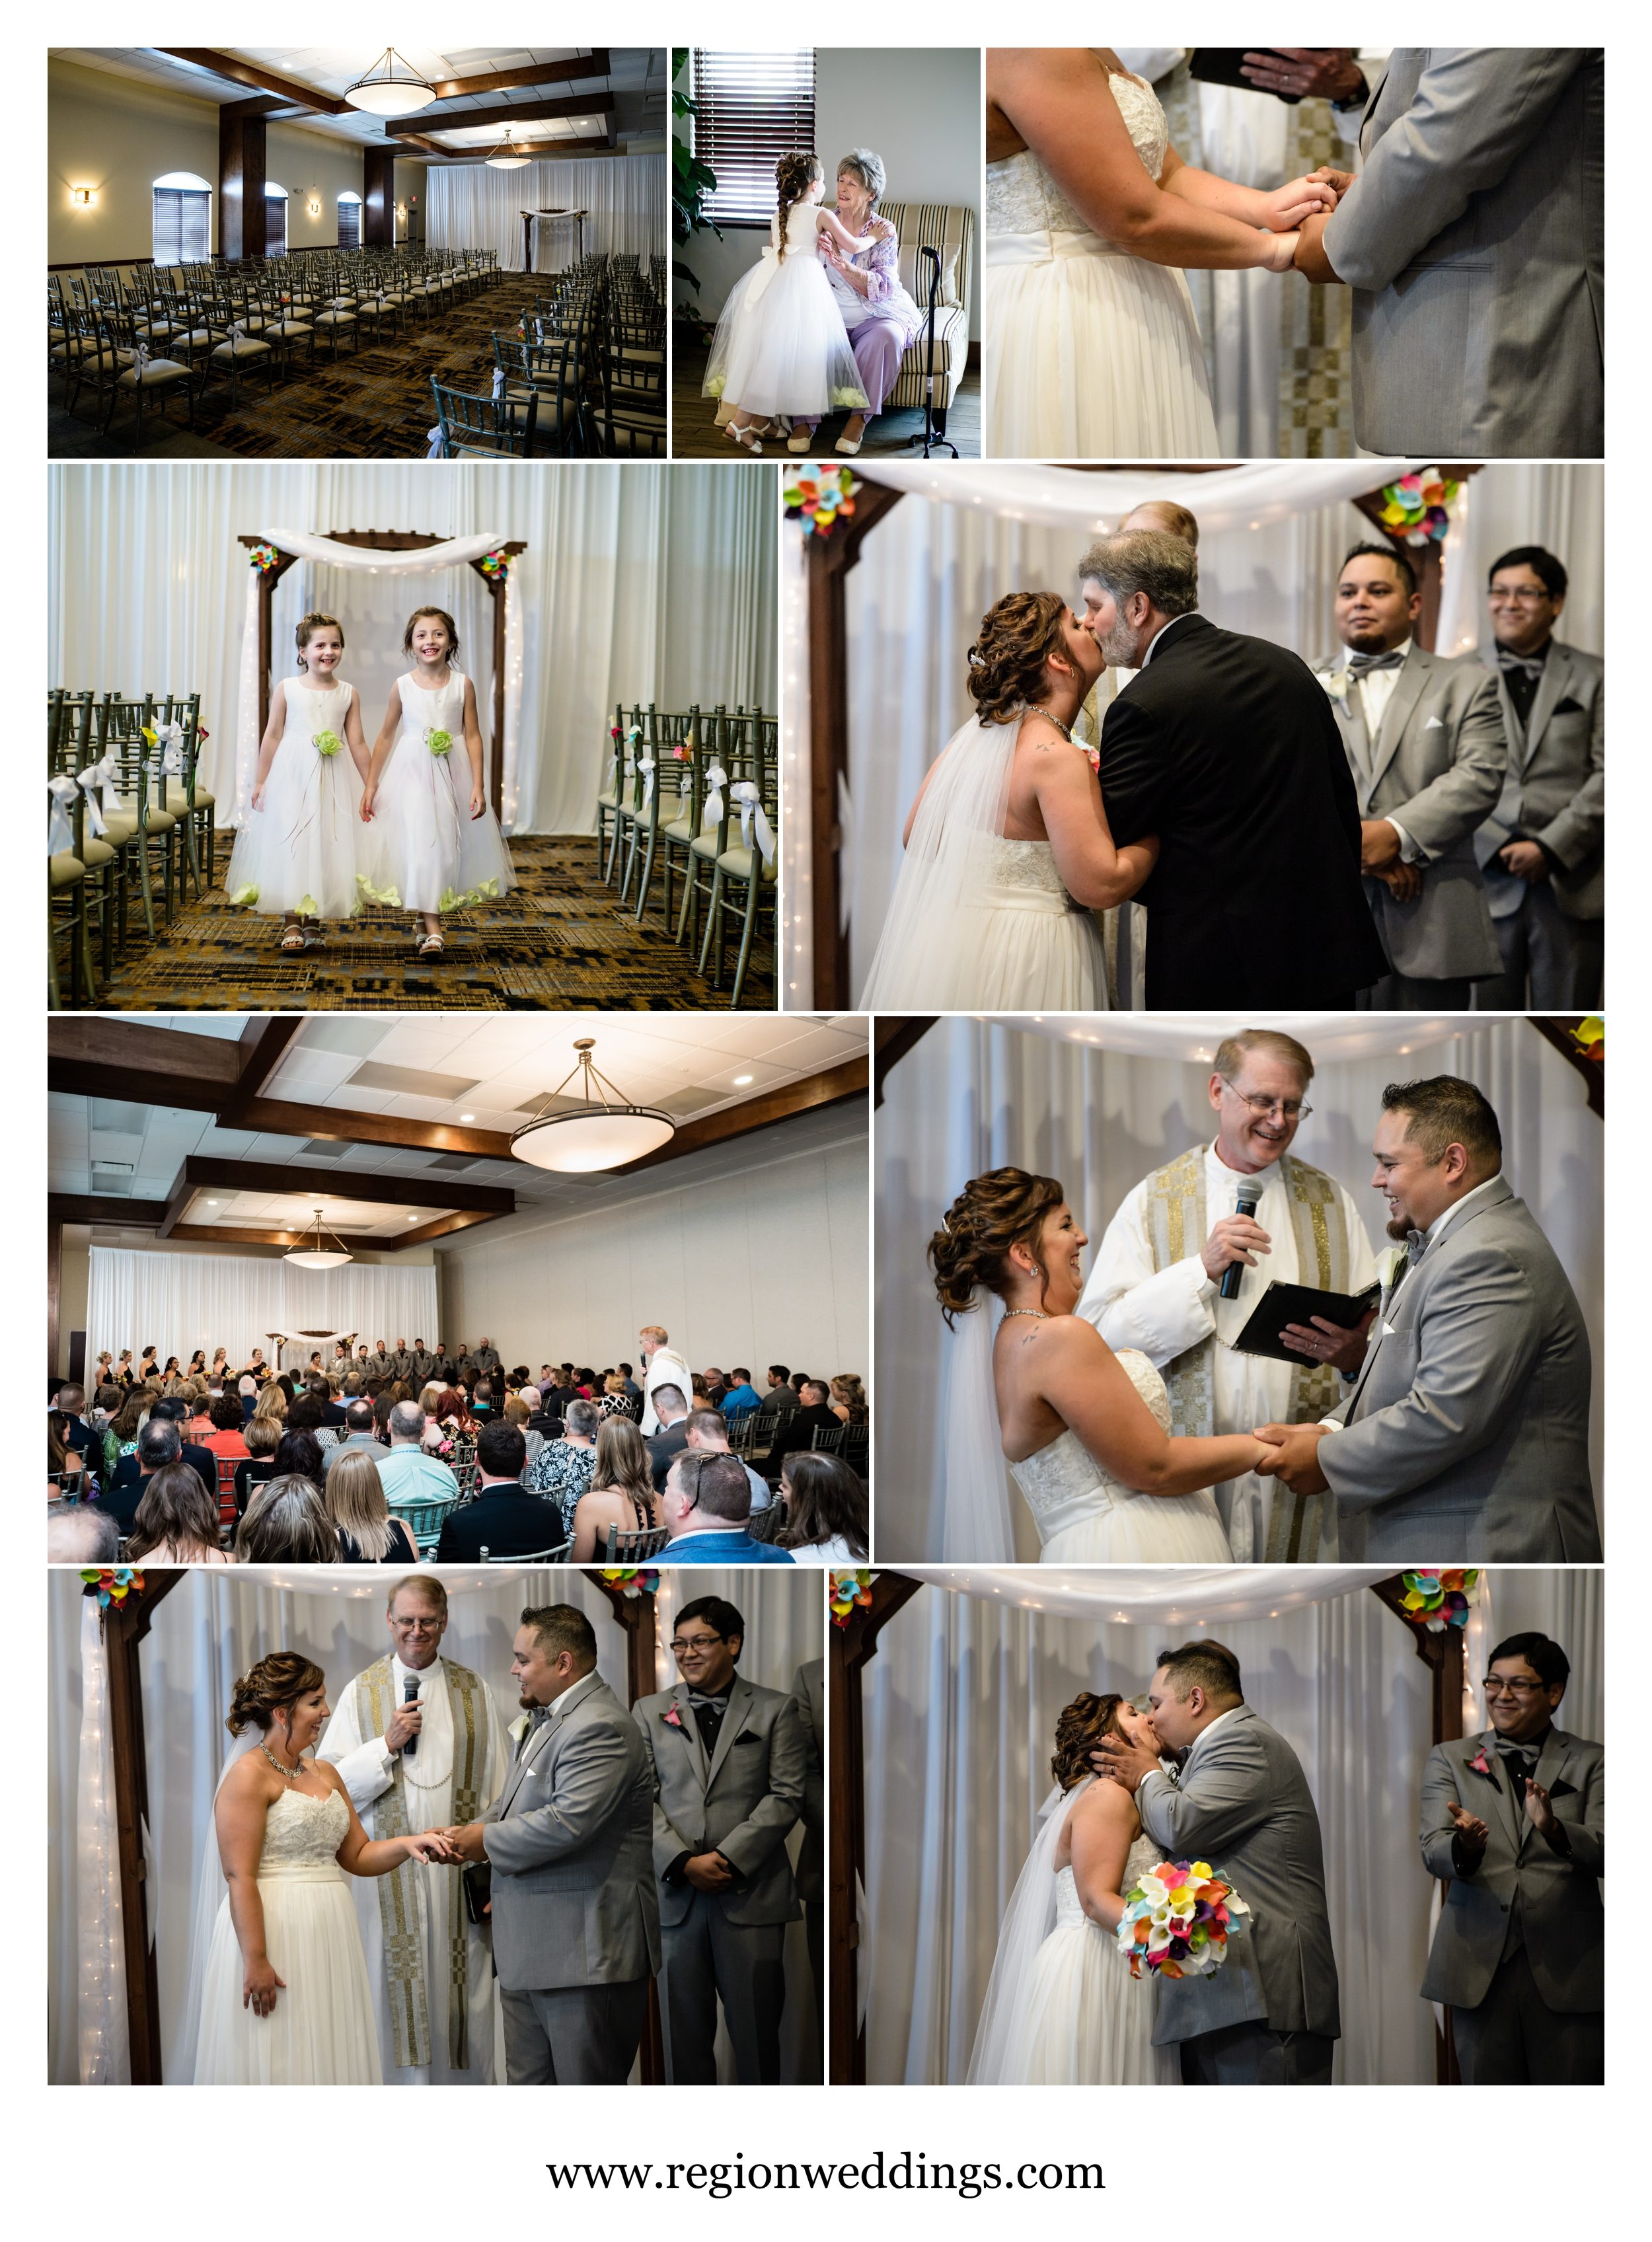 Wedding ceremony at Signature Banquets in Lowell, Indiana.